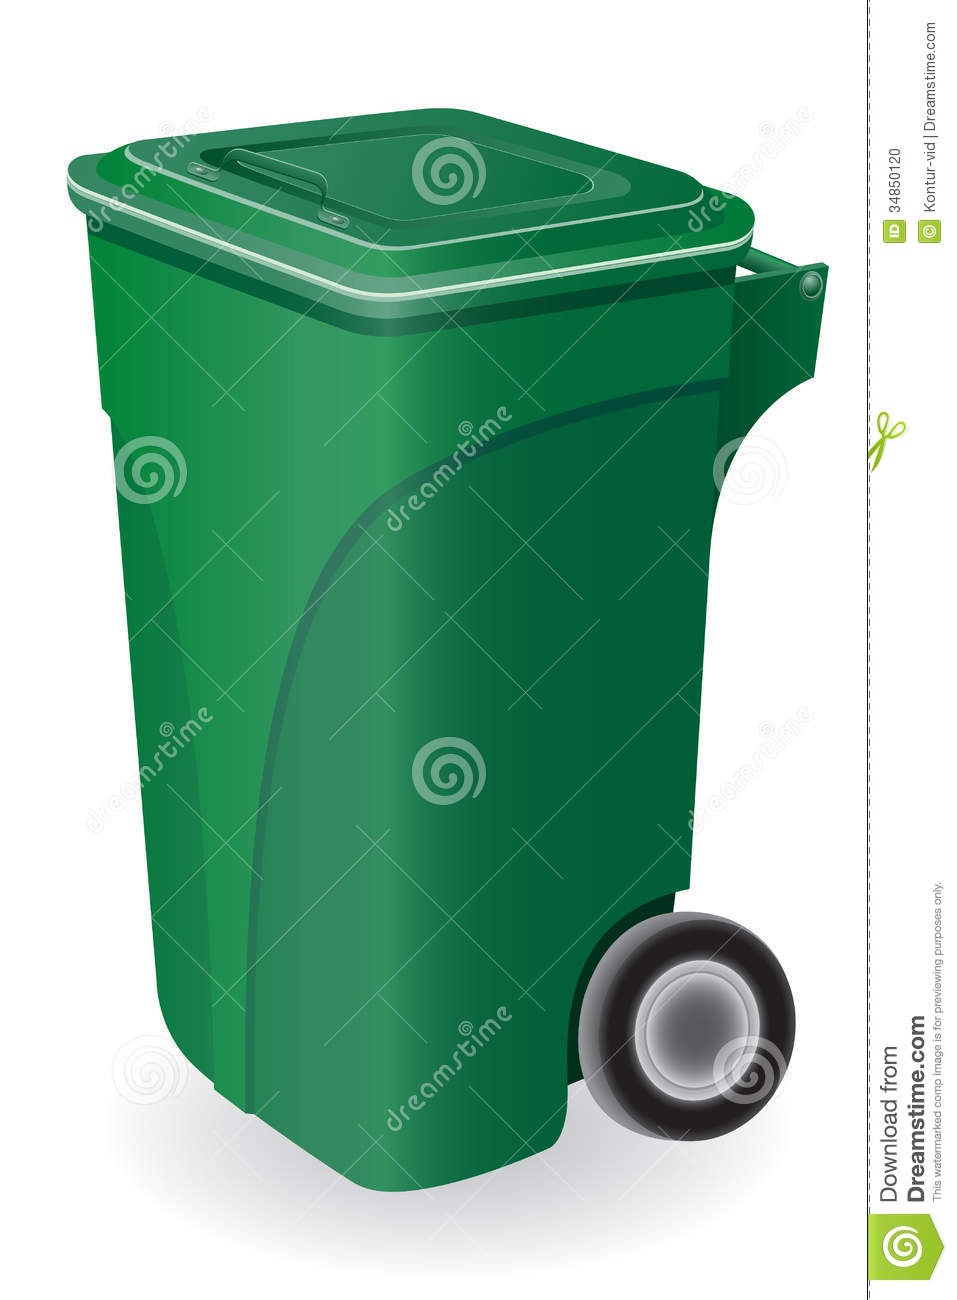 Trash Can Vector Illustration Stock Photo Image 34850120